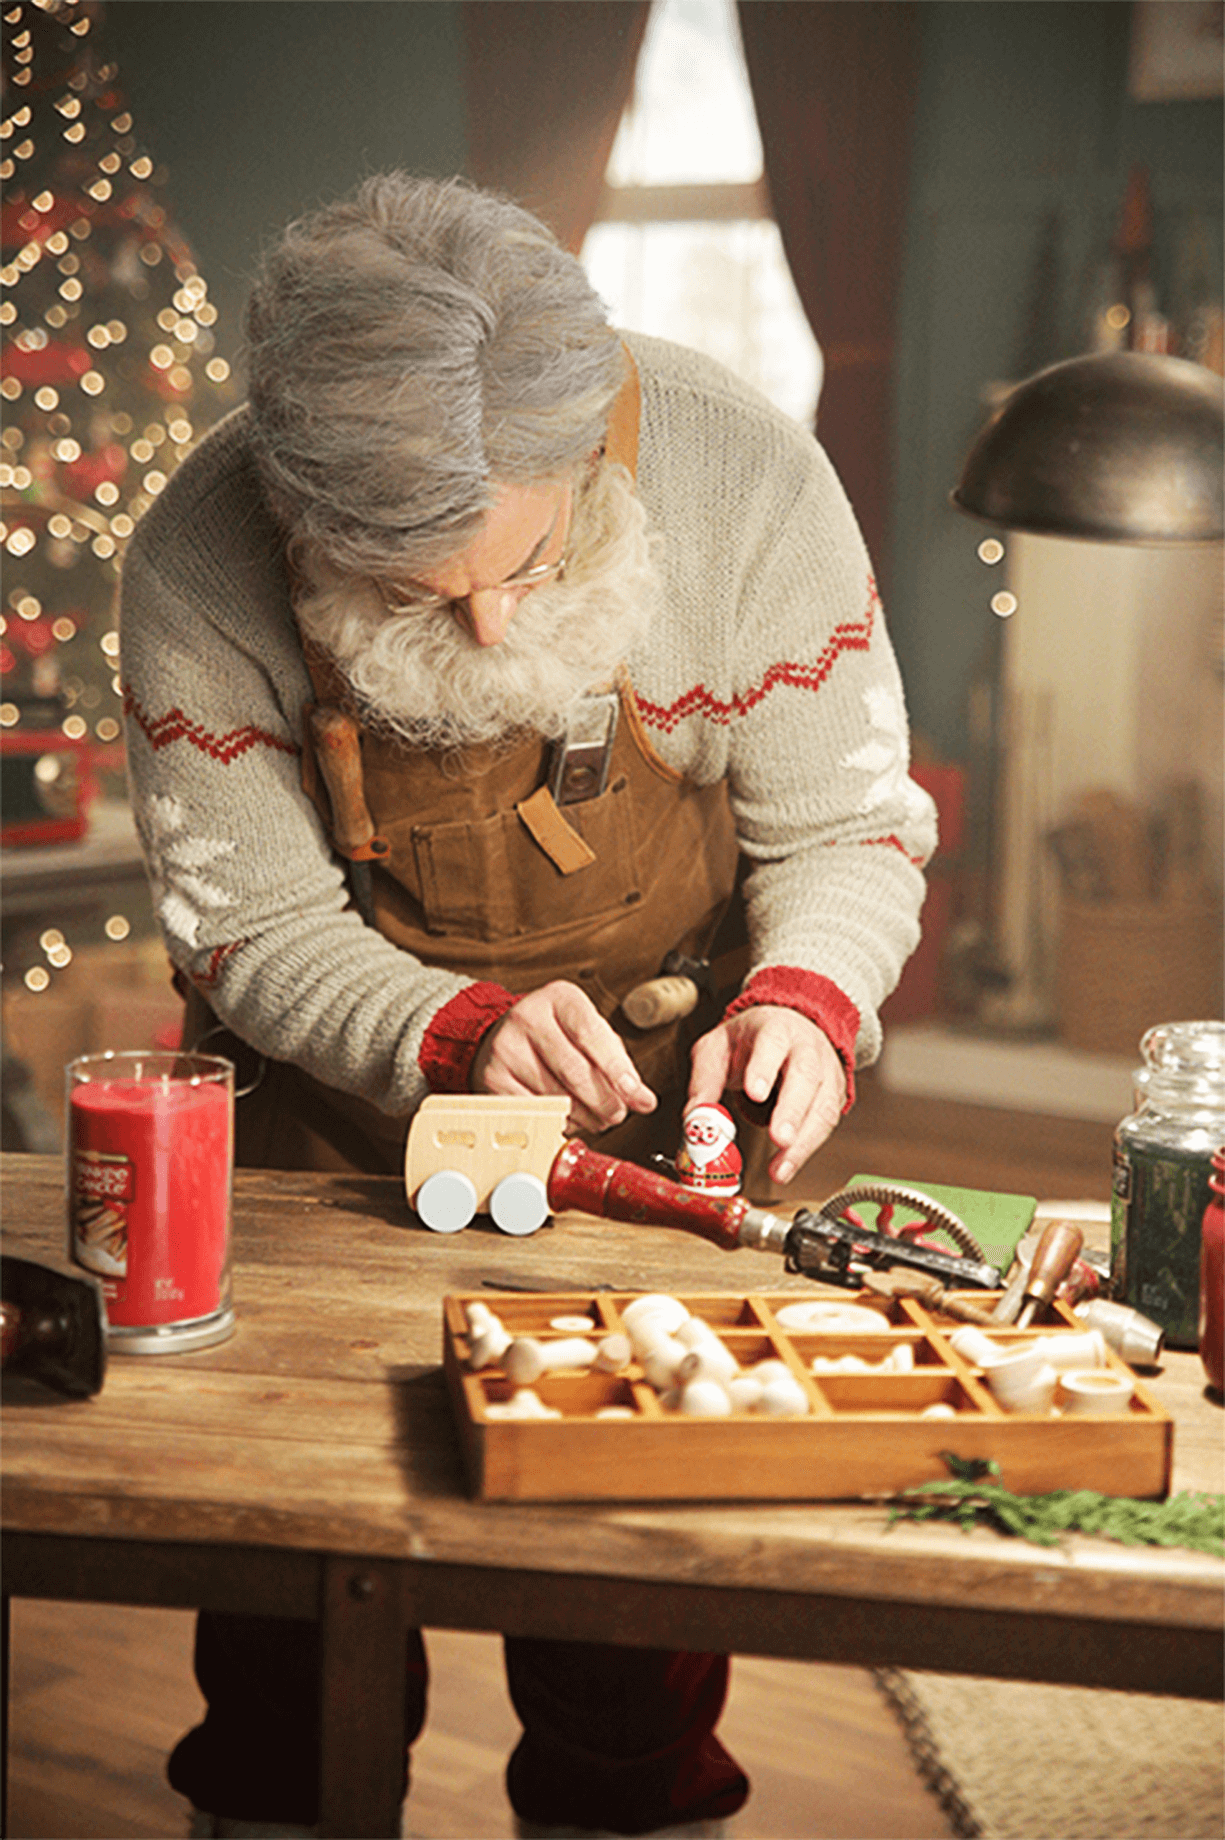 Yankee Candle tapped creative marketing agency, TMA to help the brand save Christmas during the COVID-19 pandemic. The Yankee Candle Santa Cam gave a 24-hour behind-the-scenes look at Santa, Mrs. Claus, elves, and more as they prepared for the big day in the North Pole.